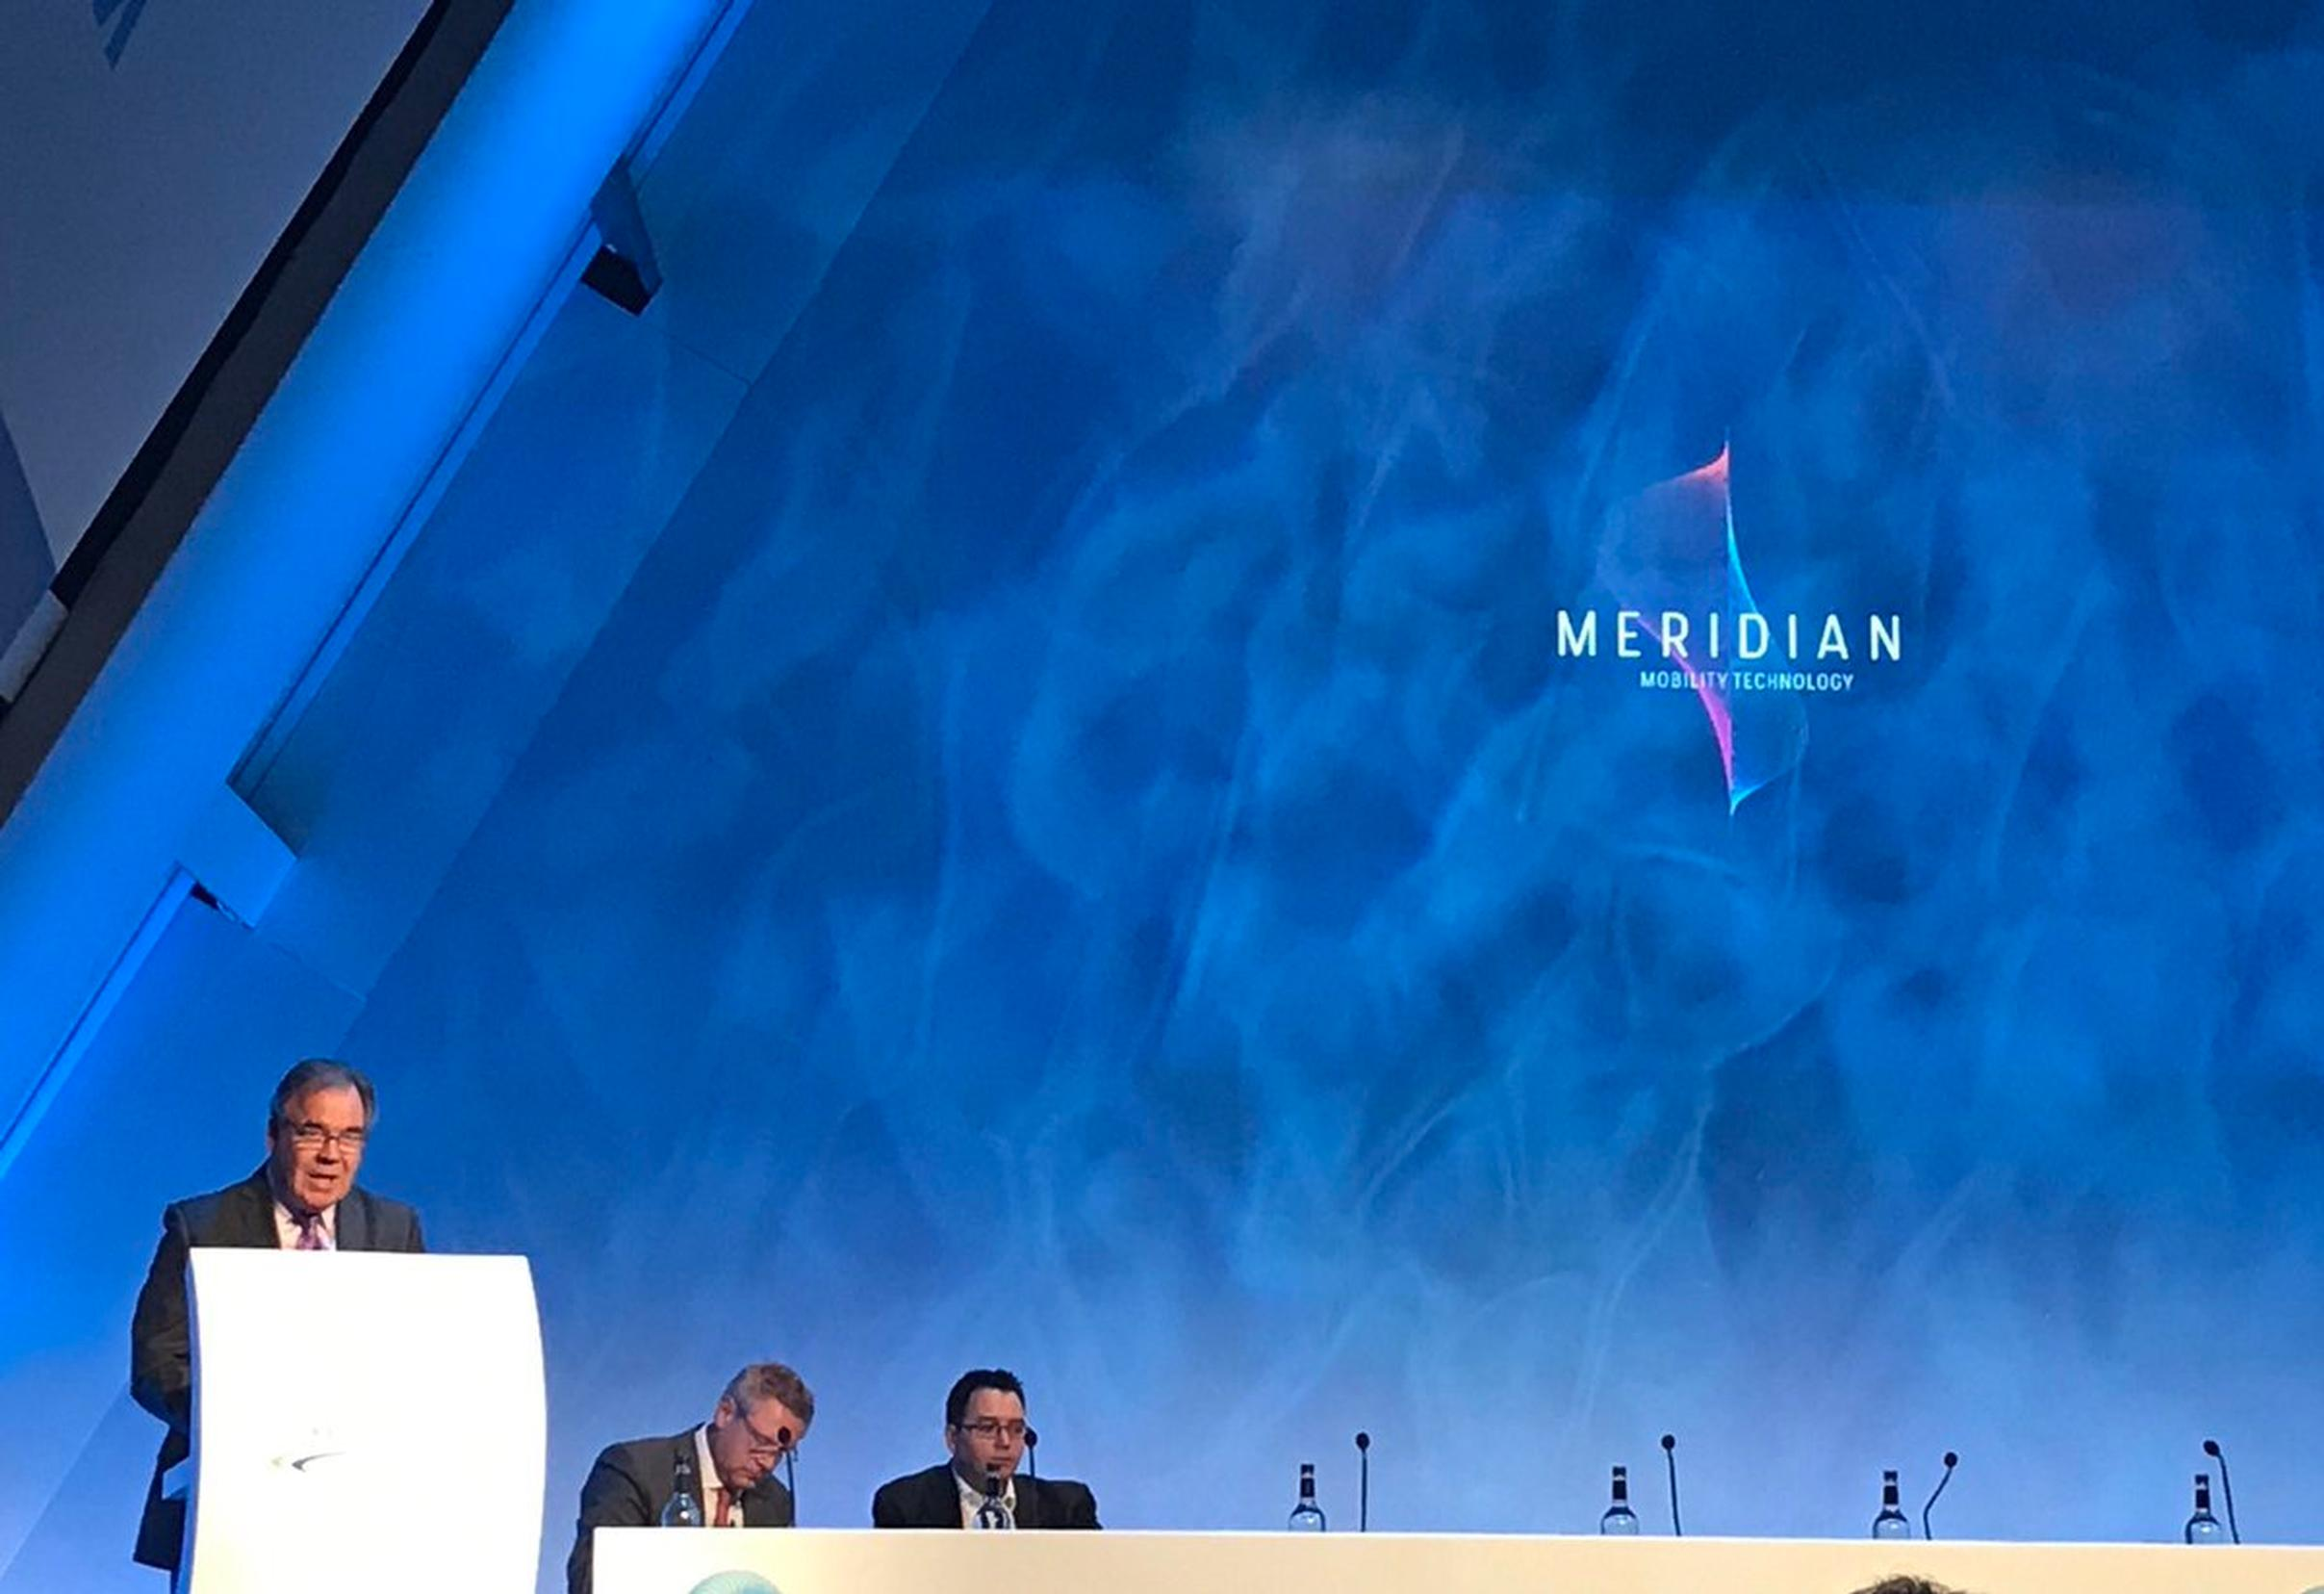 Meridian was launched by Jim Campbell at Cenex-LCV 2017